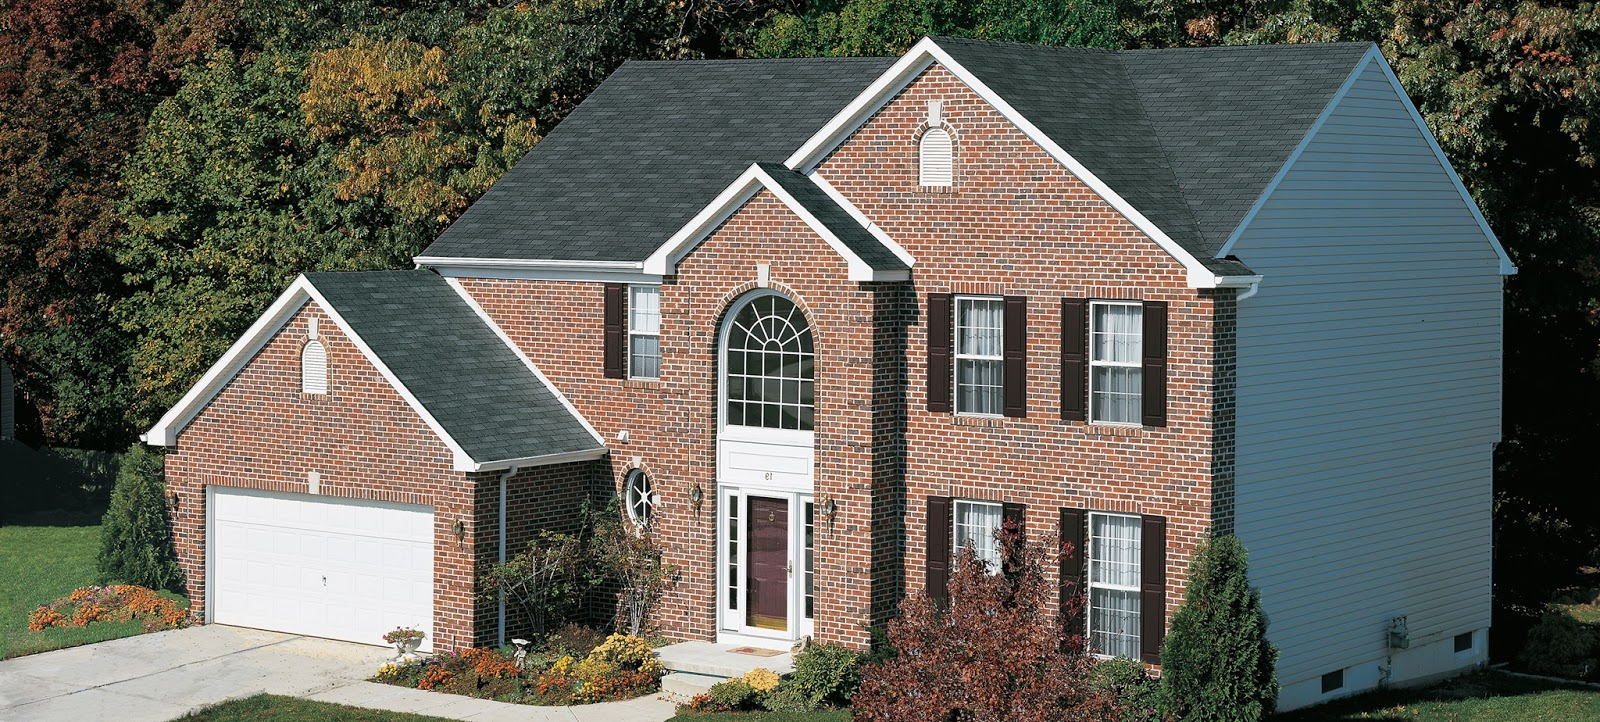 Jp Construction Services Offered In Maryland A Brief Overview Of